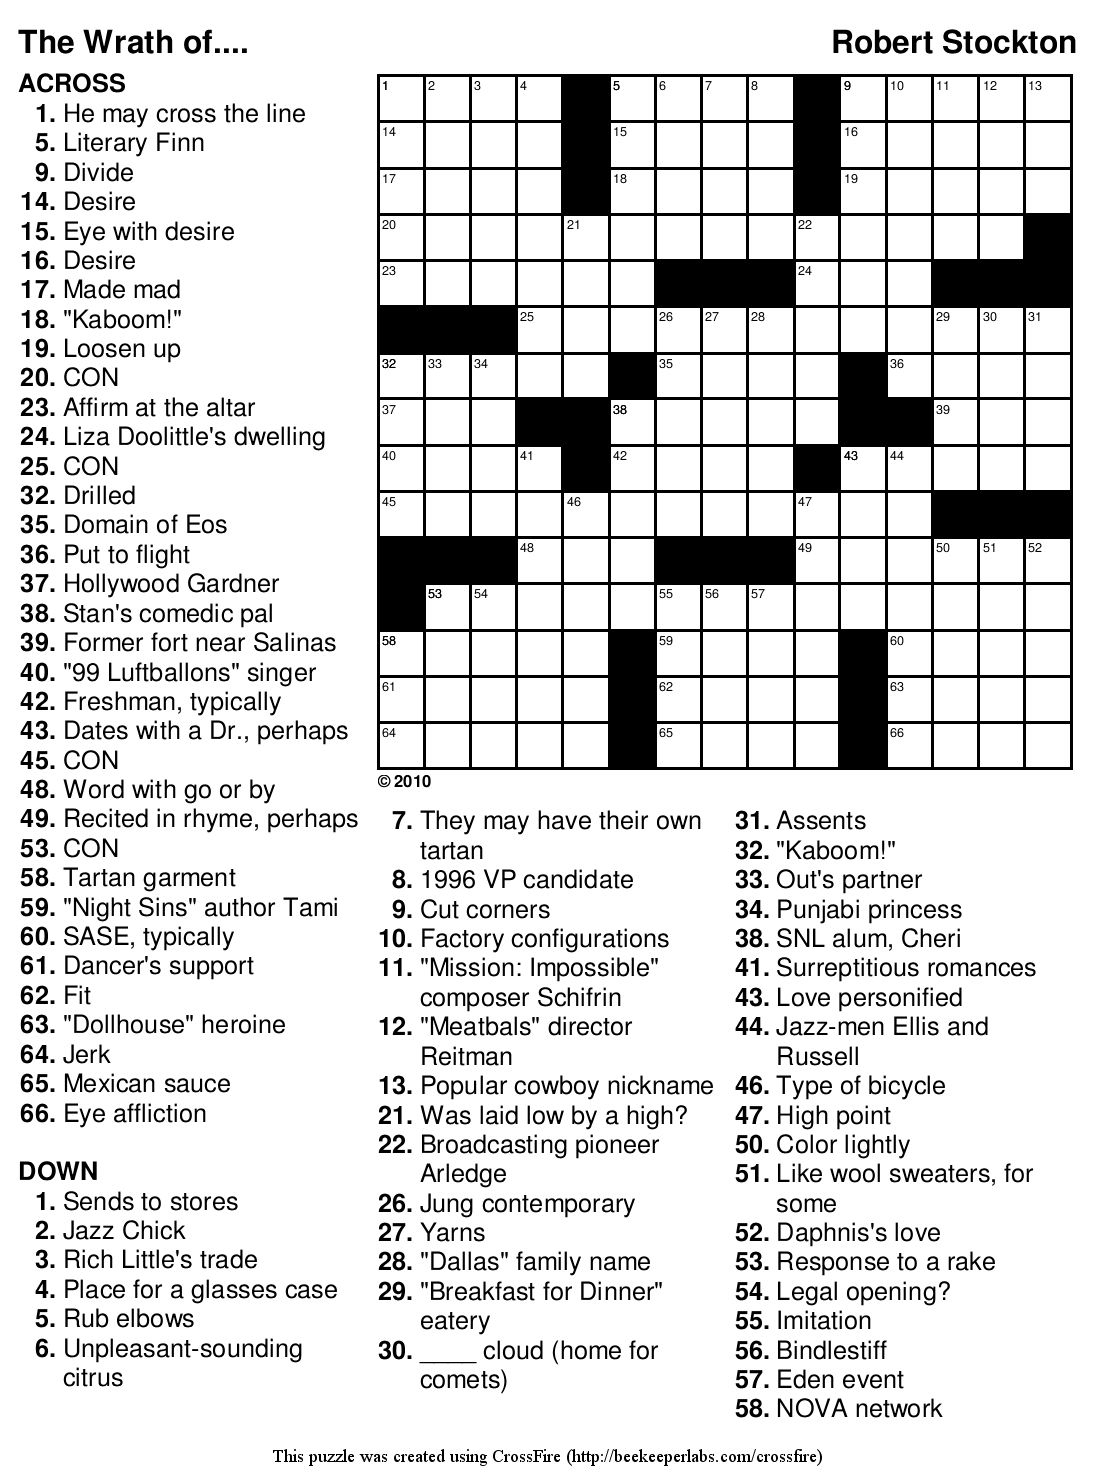 Marvelous Crossword Puzzles Easy Printable Free Org | Chas's Board - Crossword Puzzle Maker Free Printable 30 Words